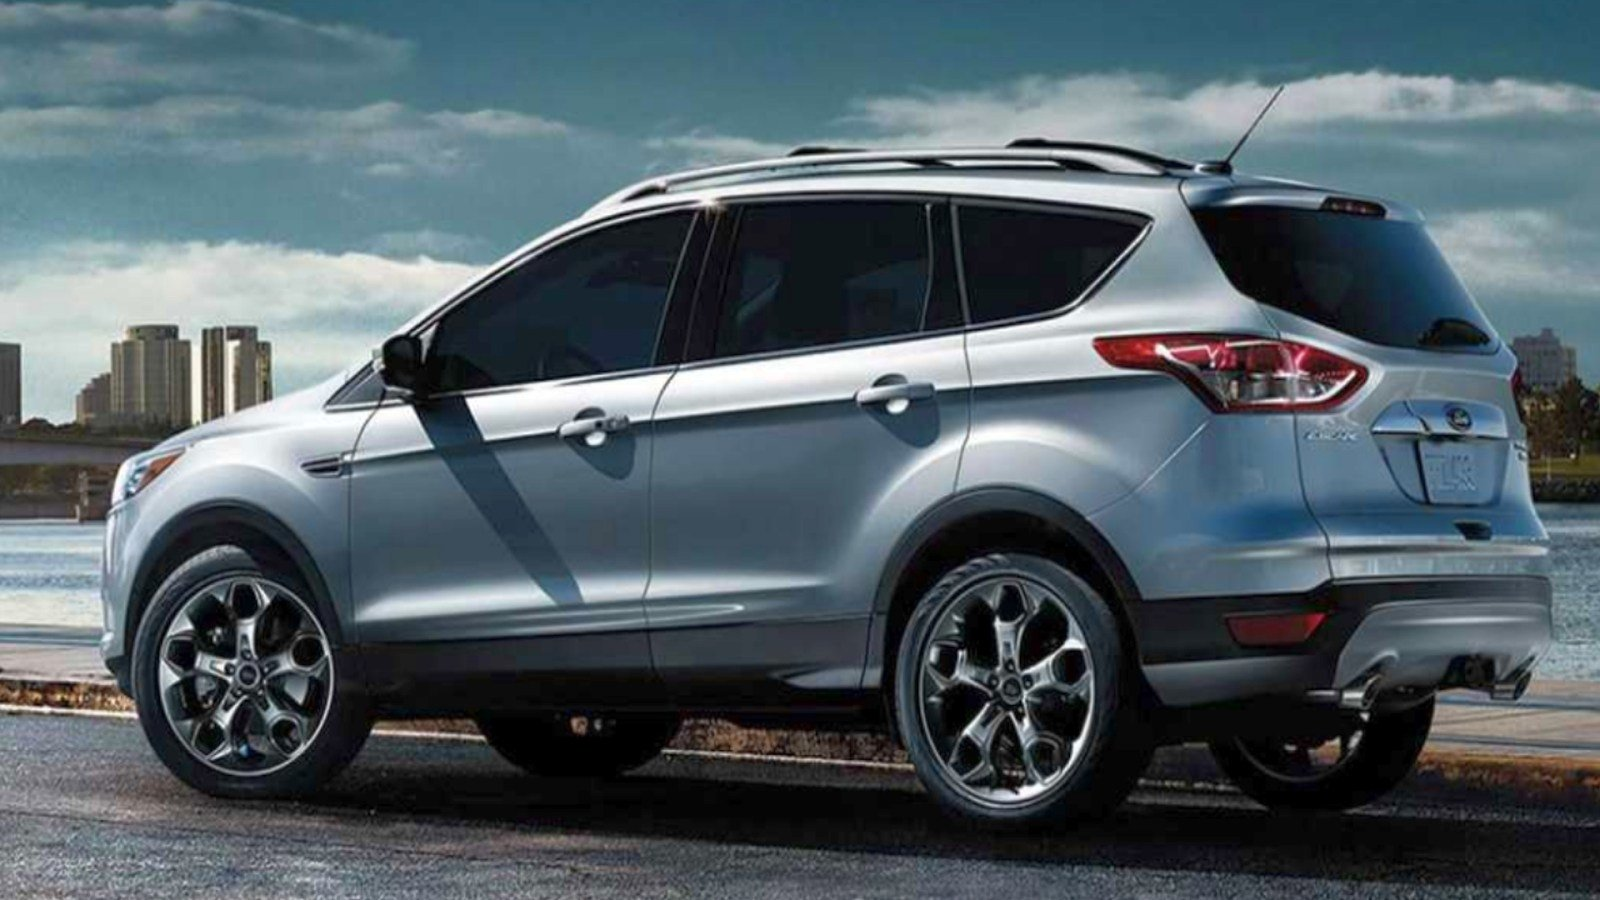 Latest 2018 Ford Kuga Exterior Images New Car Release News Free Download